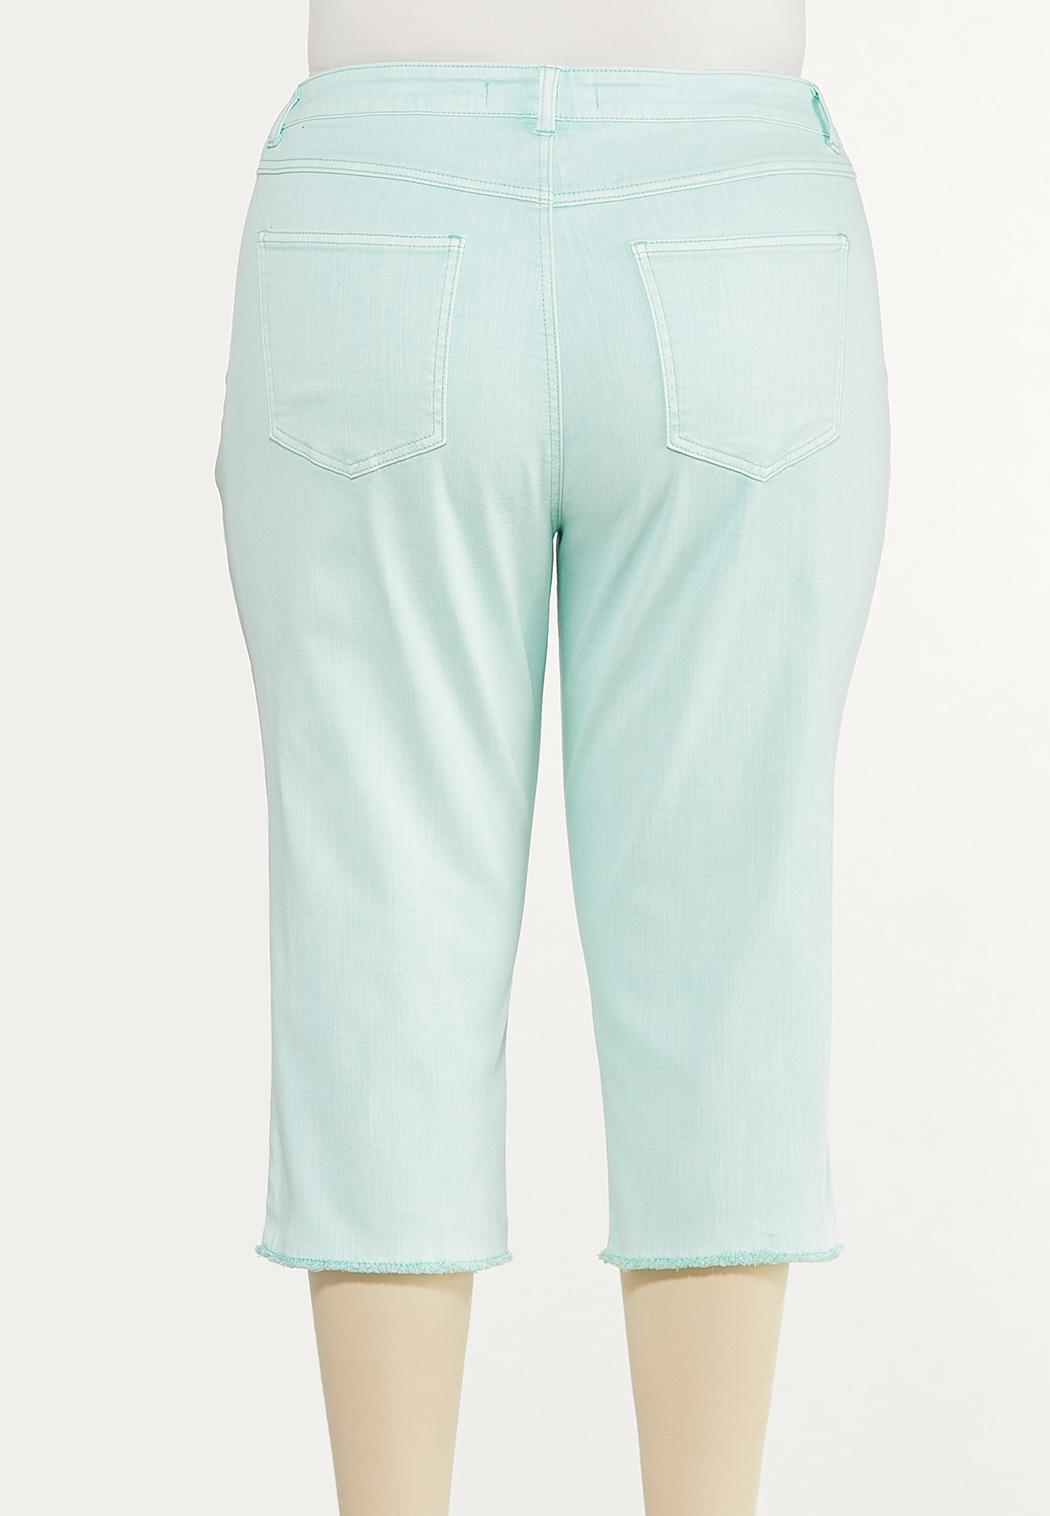 Plus Size Curvy Frayed Cropped Jeans (Item #44575807)